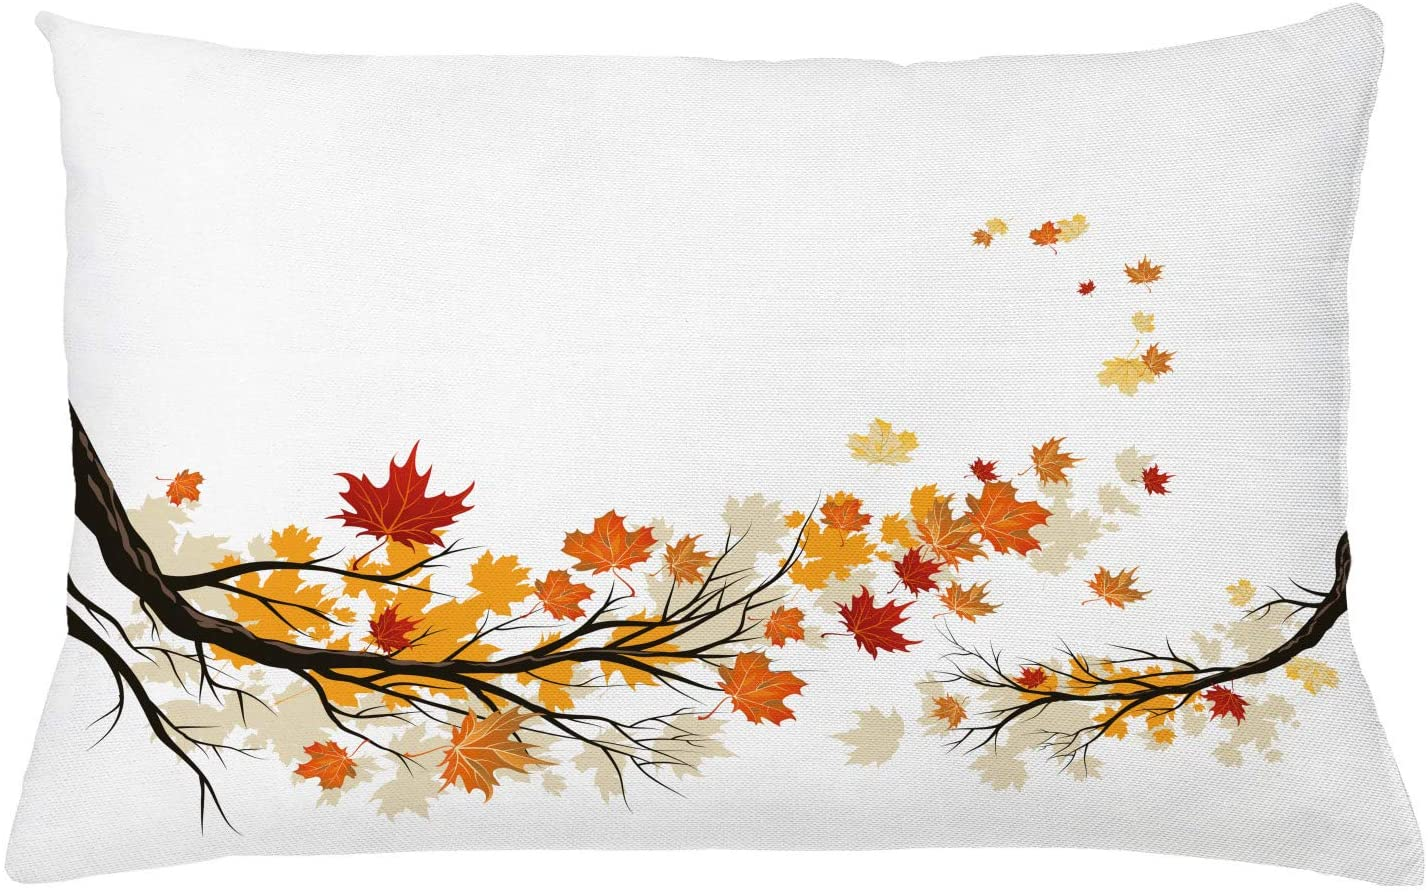 Ambesonne Fall Throw Pillow Cushion Cover, Swirling Bended Fall Tree Branches with Colored Leaves Pastoral Season Theme, Decorative Rectangle Accent Pillow Case, 26